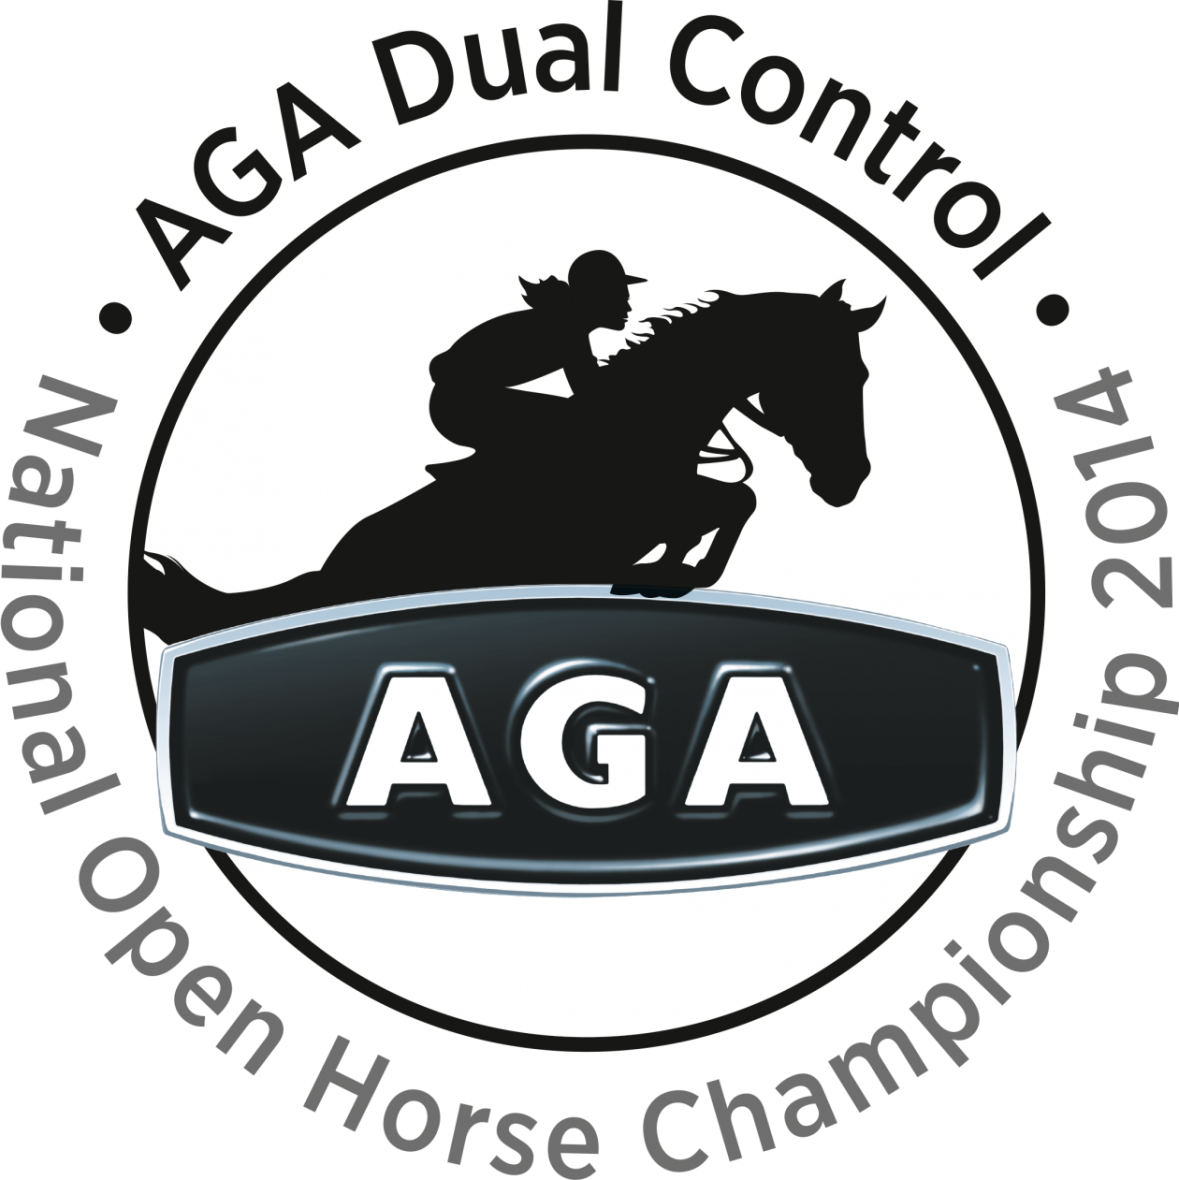 The logo for our new owners championship